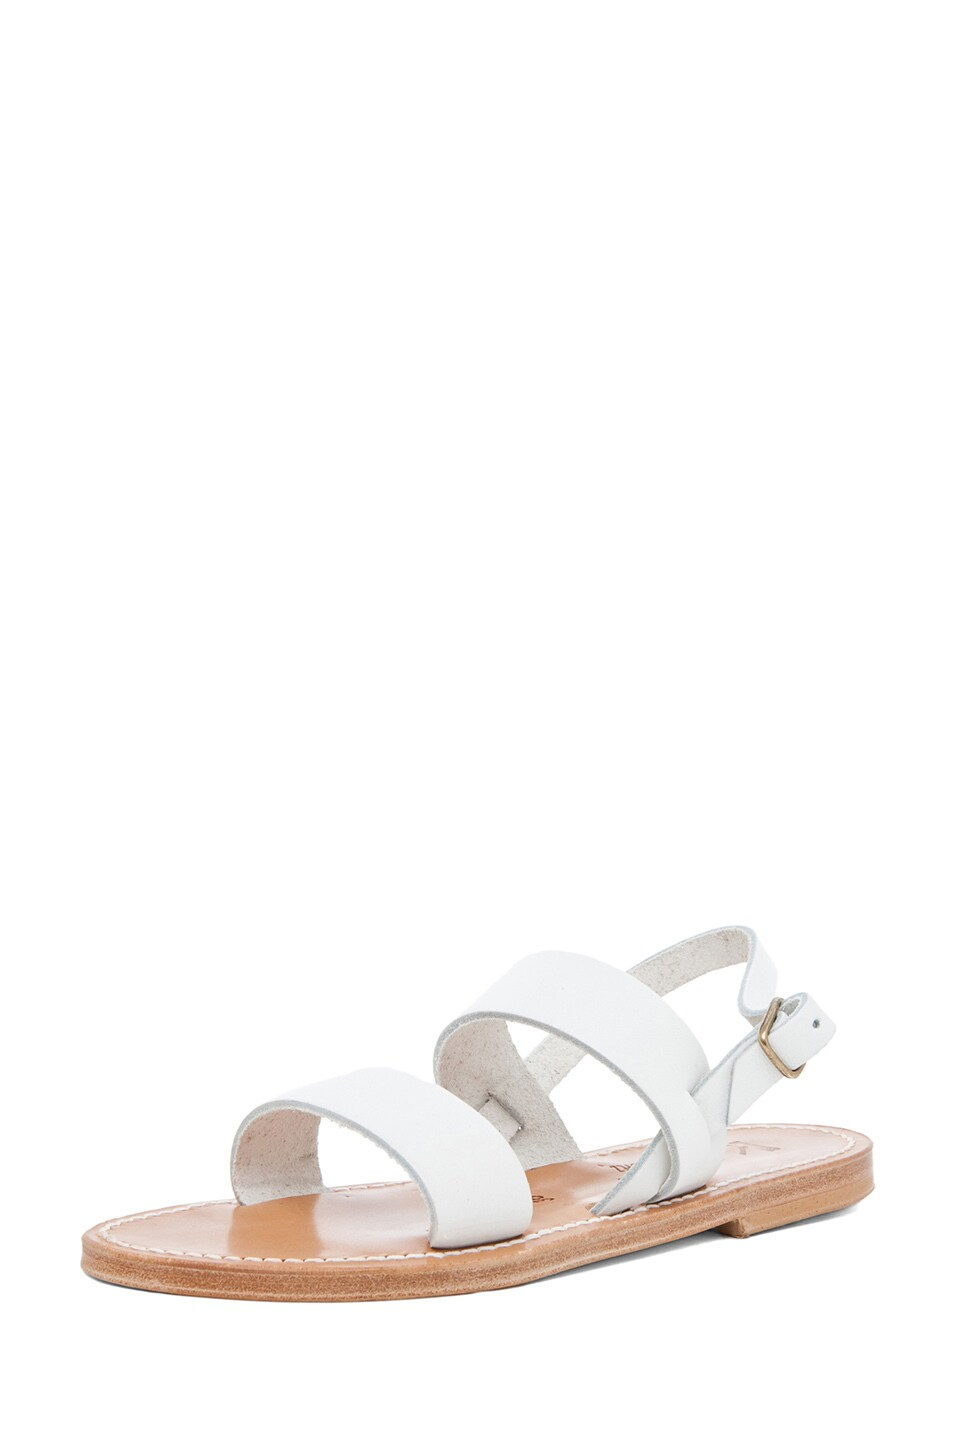 Image 2 of K Jacques Barigoule Calfskin Leather Thick Strap Sandals in White